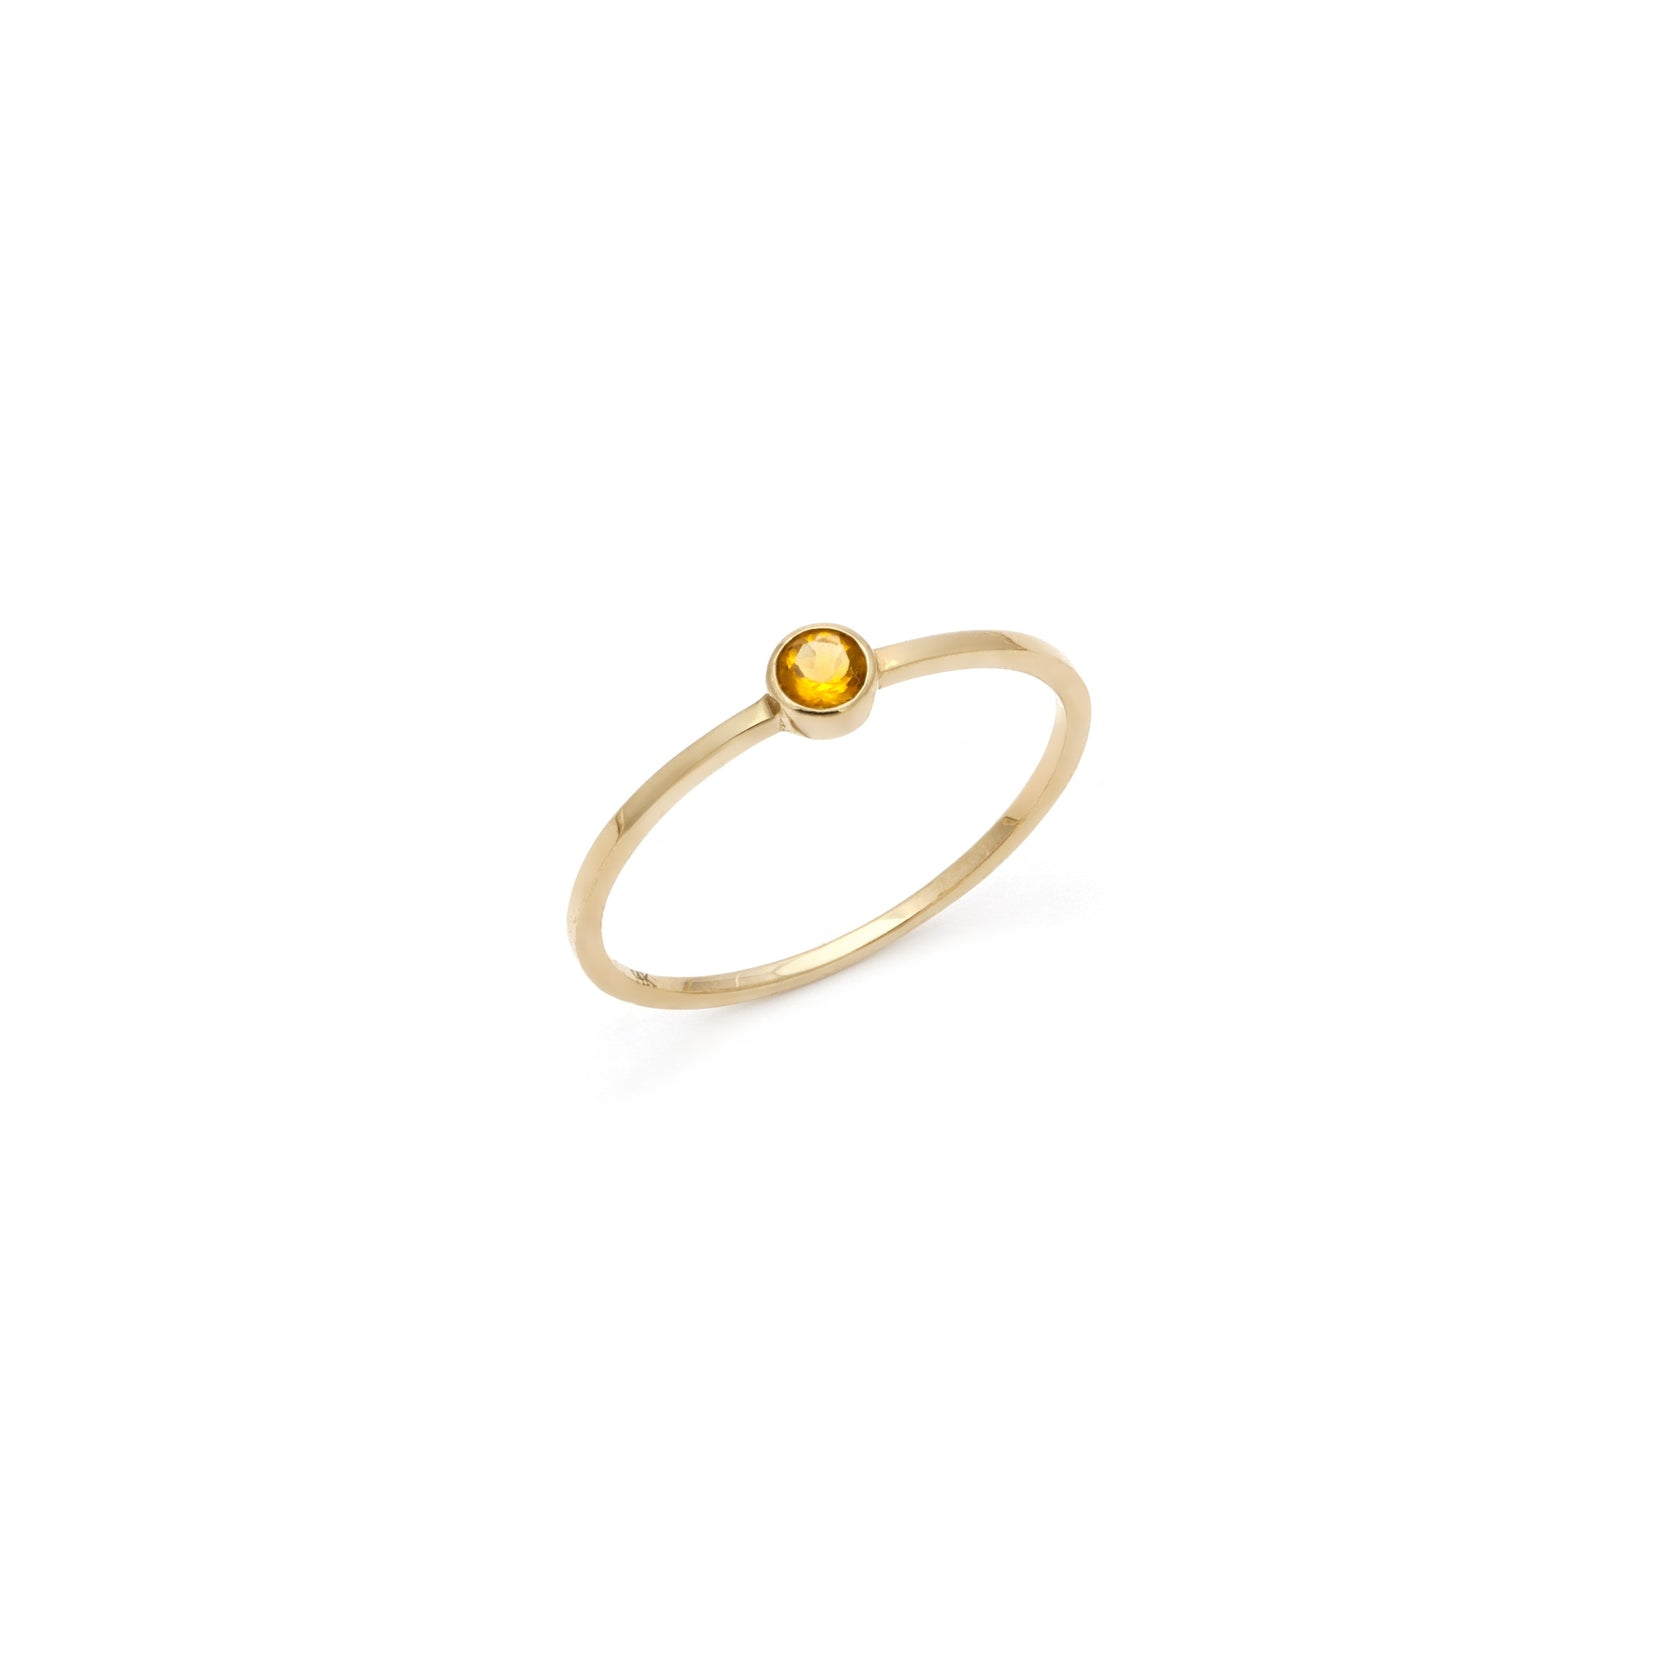 Coveted Citrine Ring - 14k Solid Gold